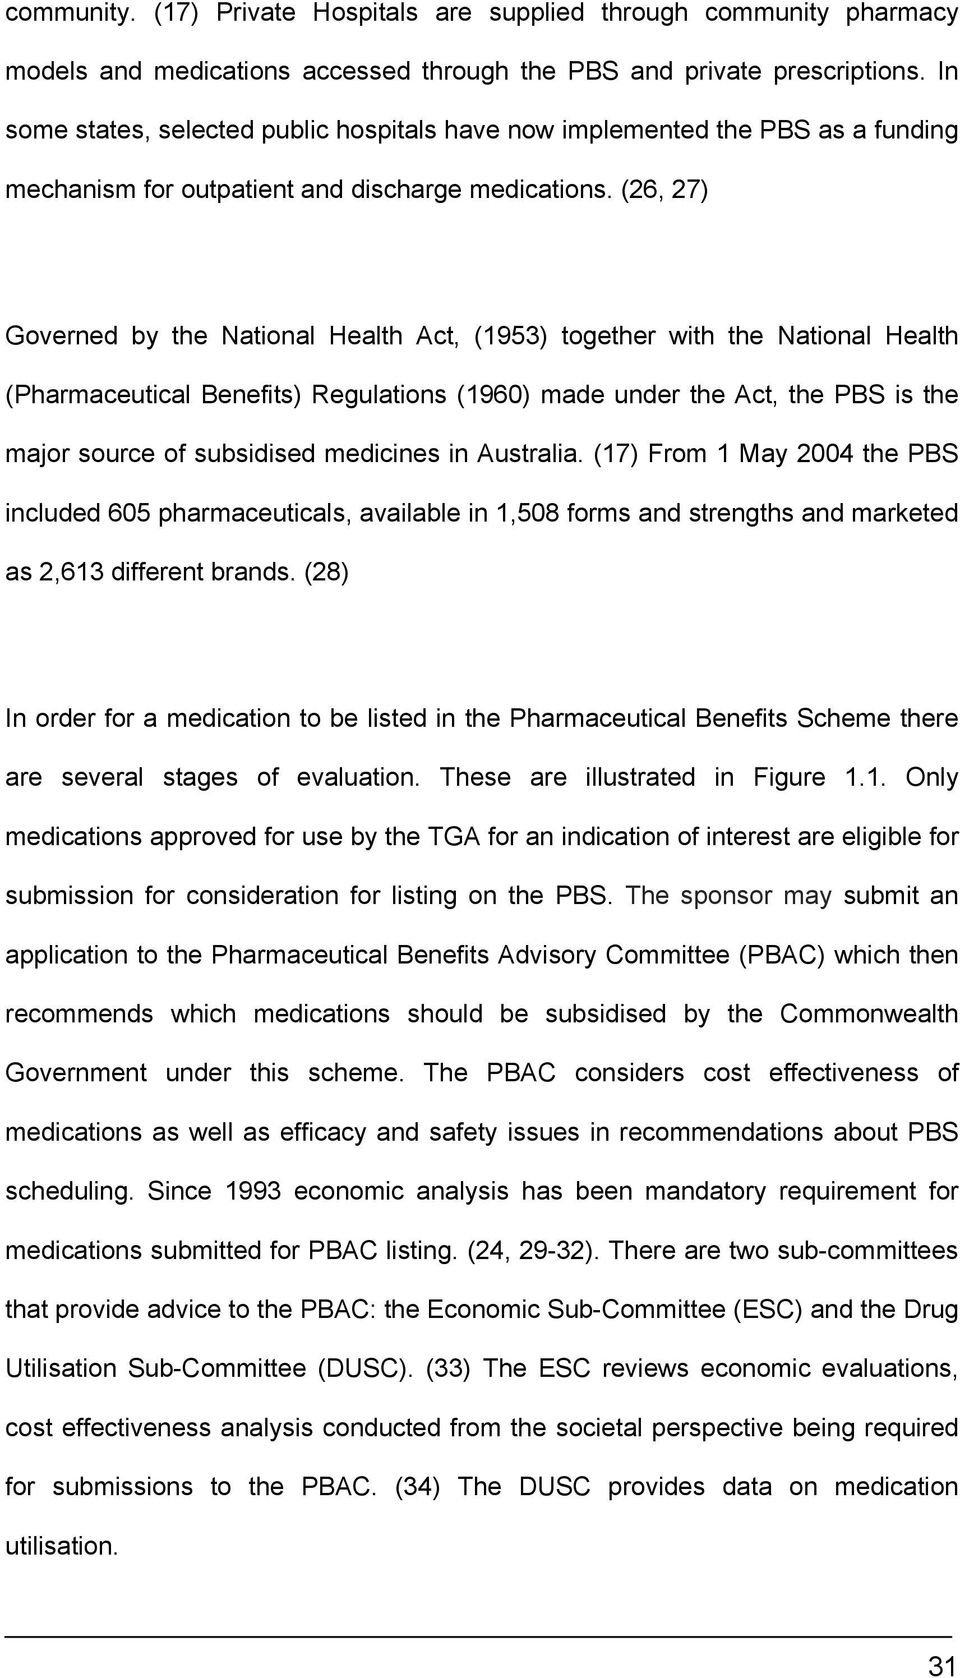 (26, 27) Governed by the National Health Act, (1953) together with the National Health (Pharmaceutical Benefits) Regulations (1960) made under the Act, the PBS is the major source of subsidised